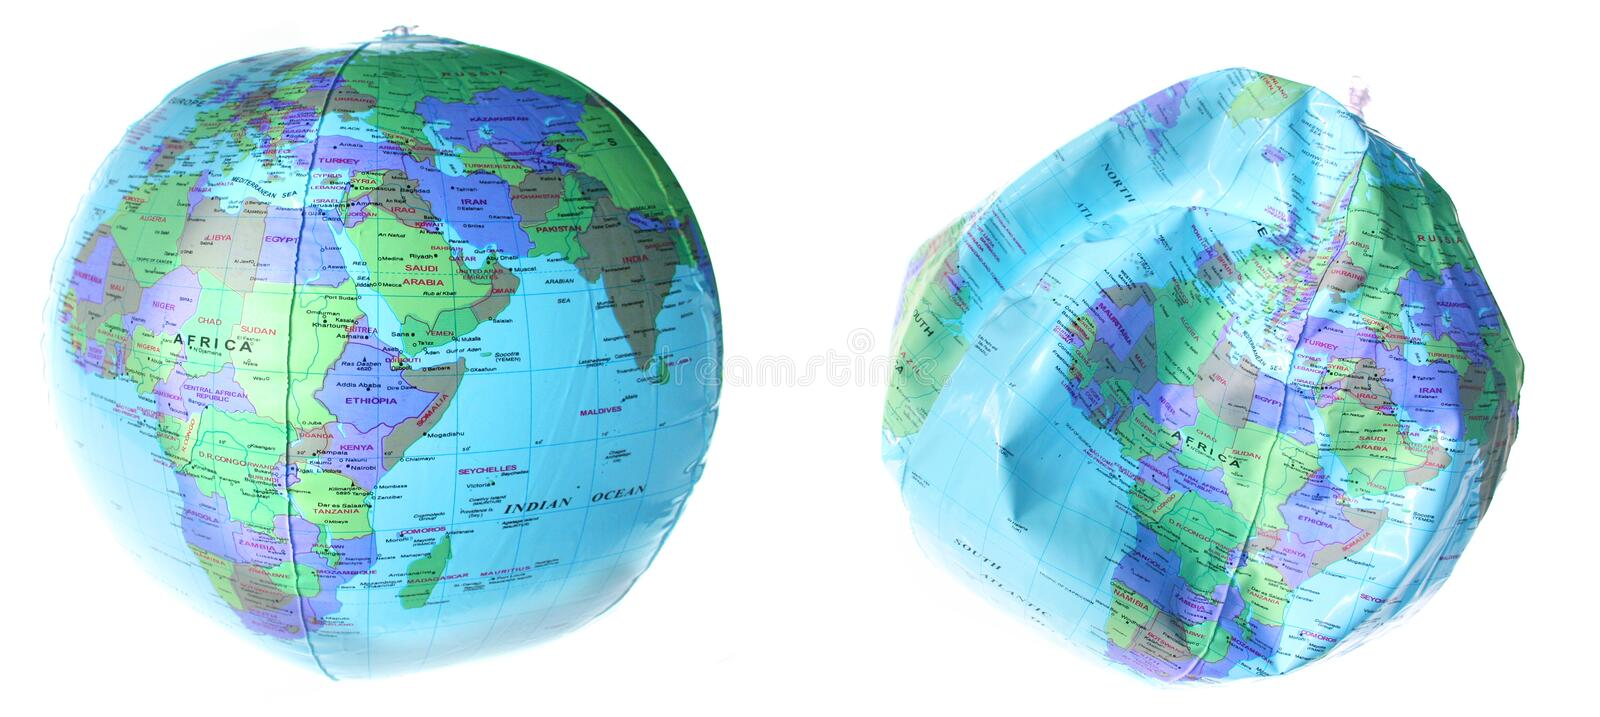 Worl earth catastrophe. Globe blown up and punctured. earth trouble isolated on white, environmental global issues royalty free stock images